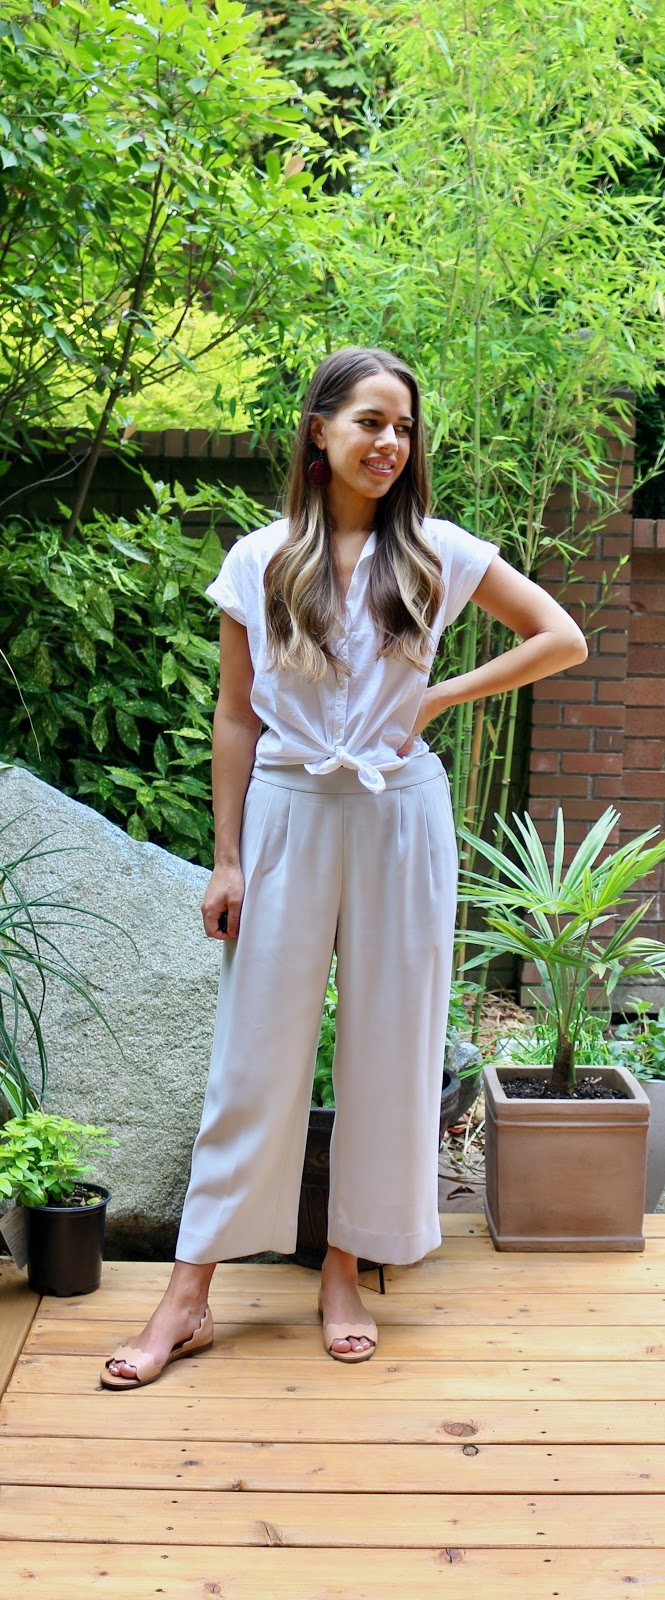 Jules in Flats -  Wide Leg Cropped Pants (Business Casual Workwear on a Budget)